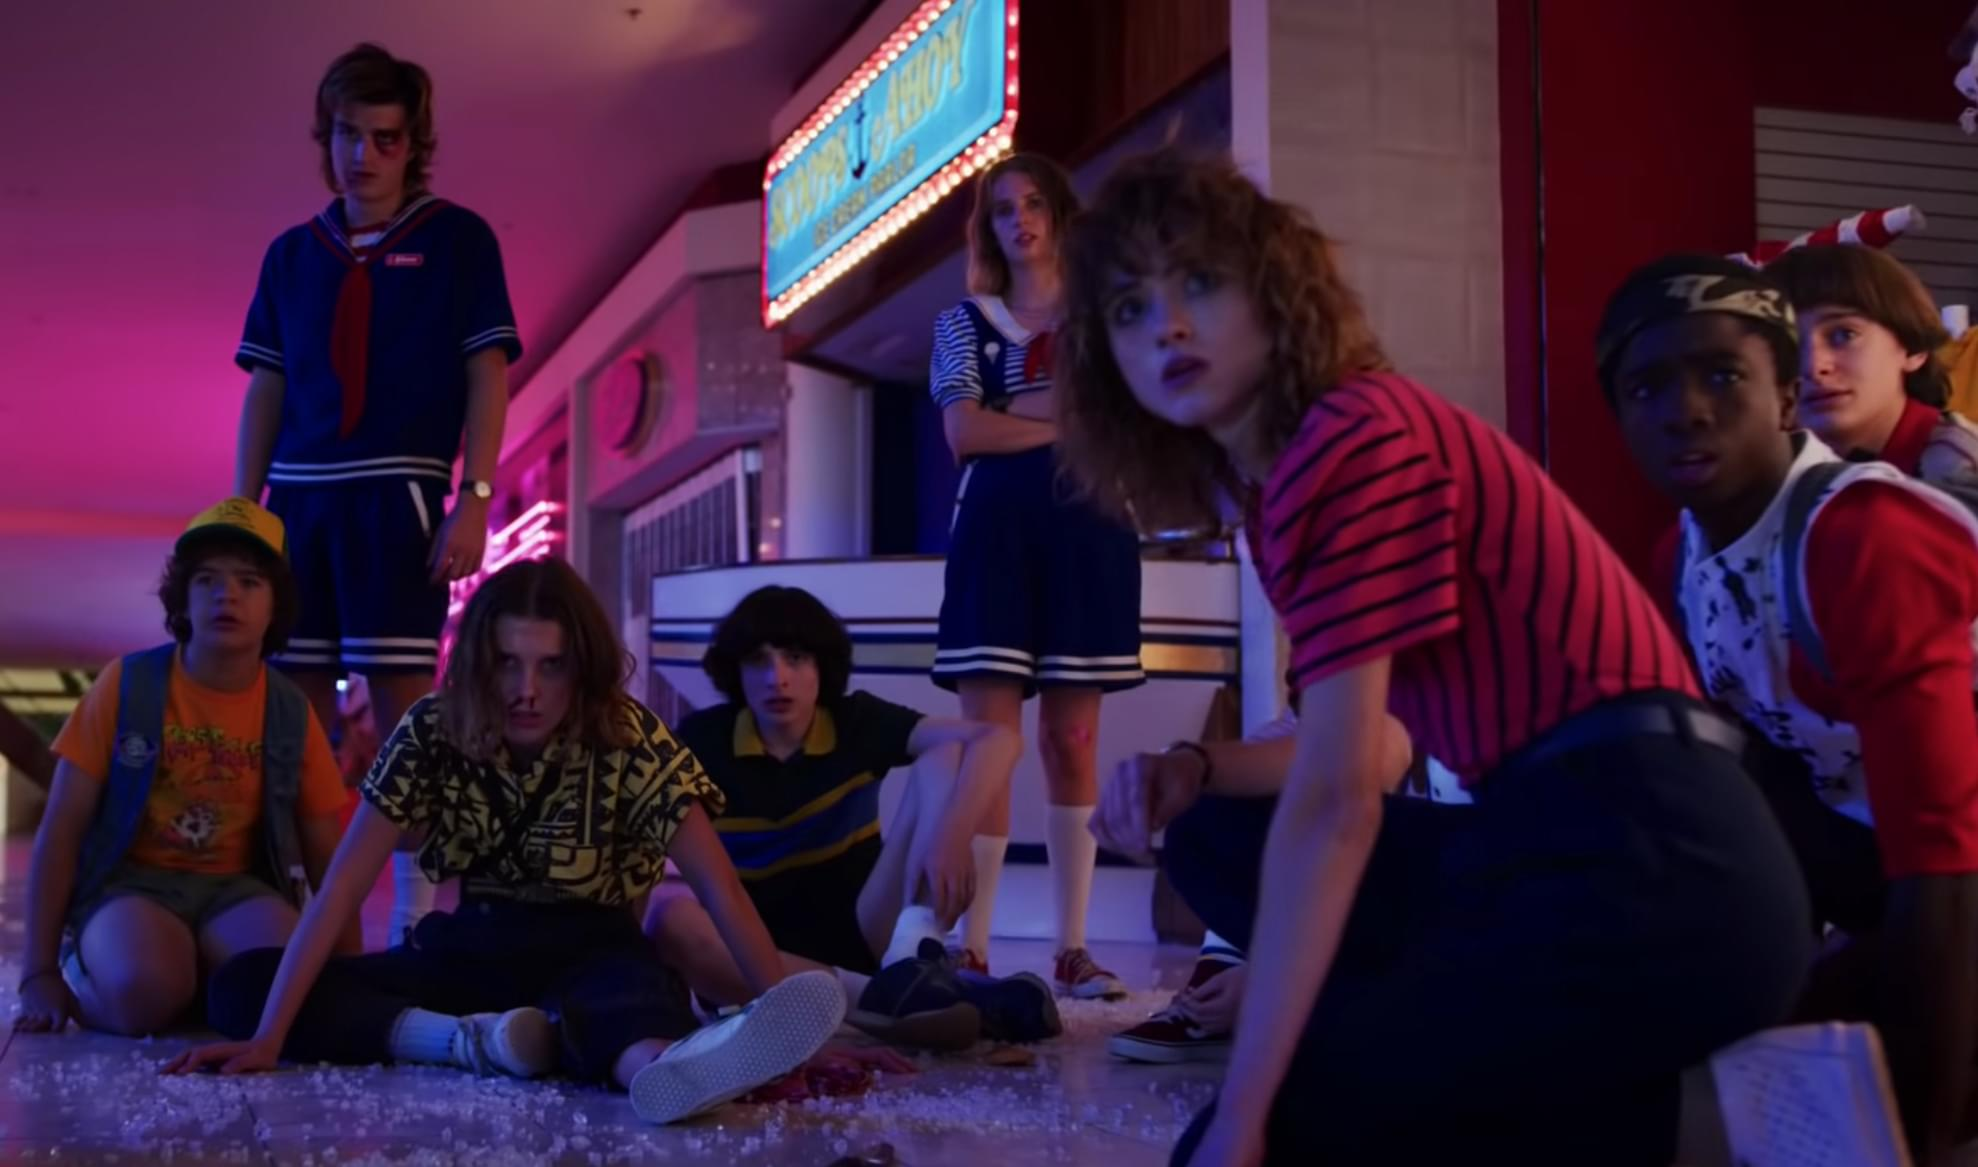 More than 40 million people have watched 'Stranger Things' Season 3 already